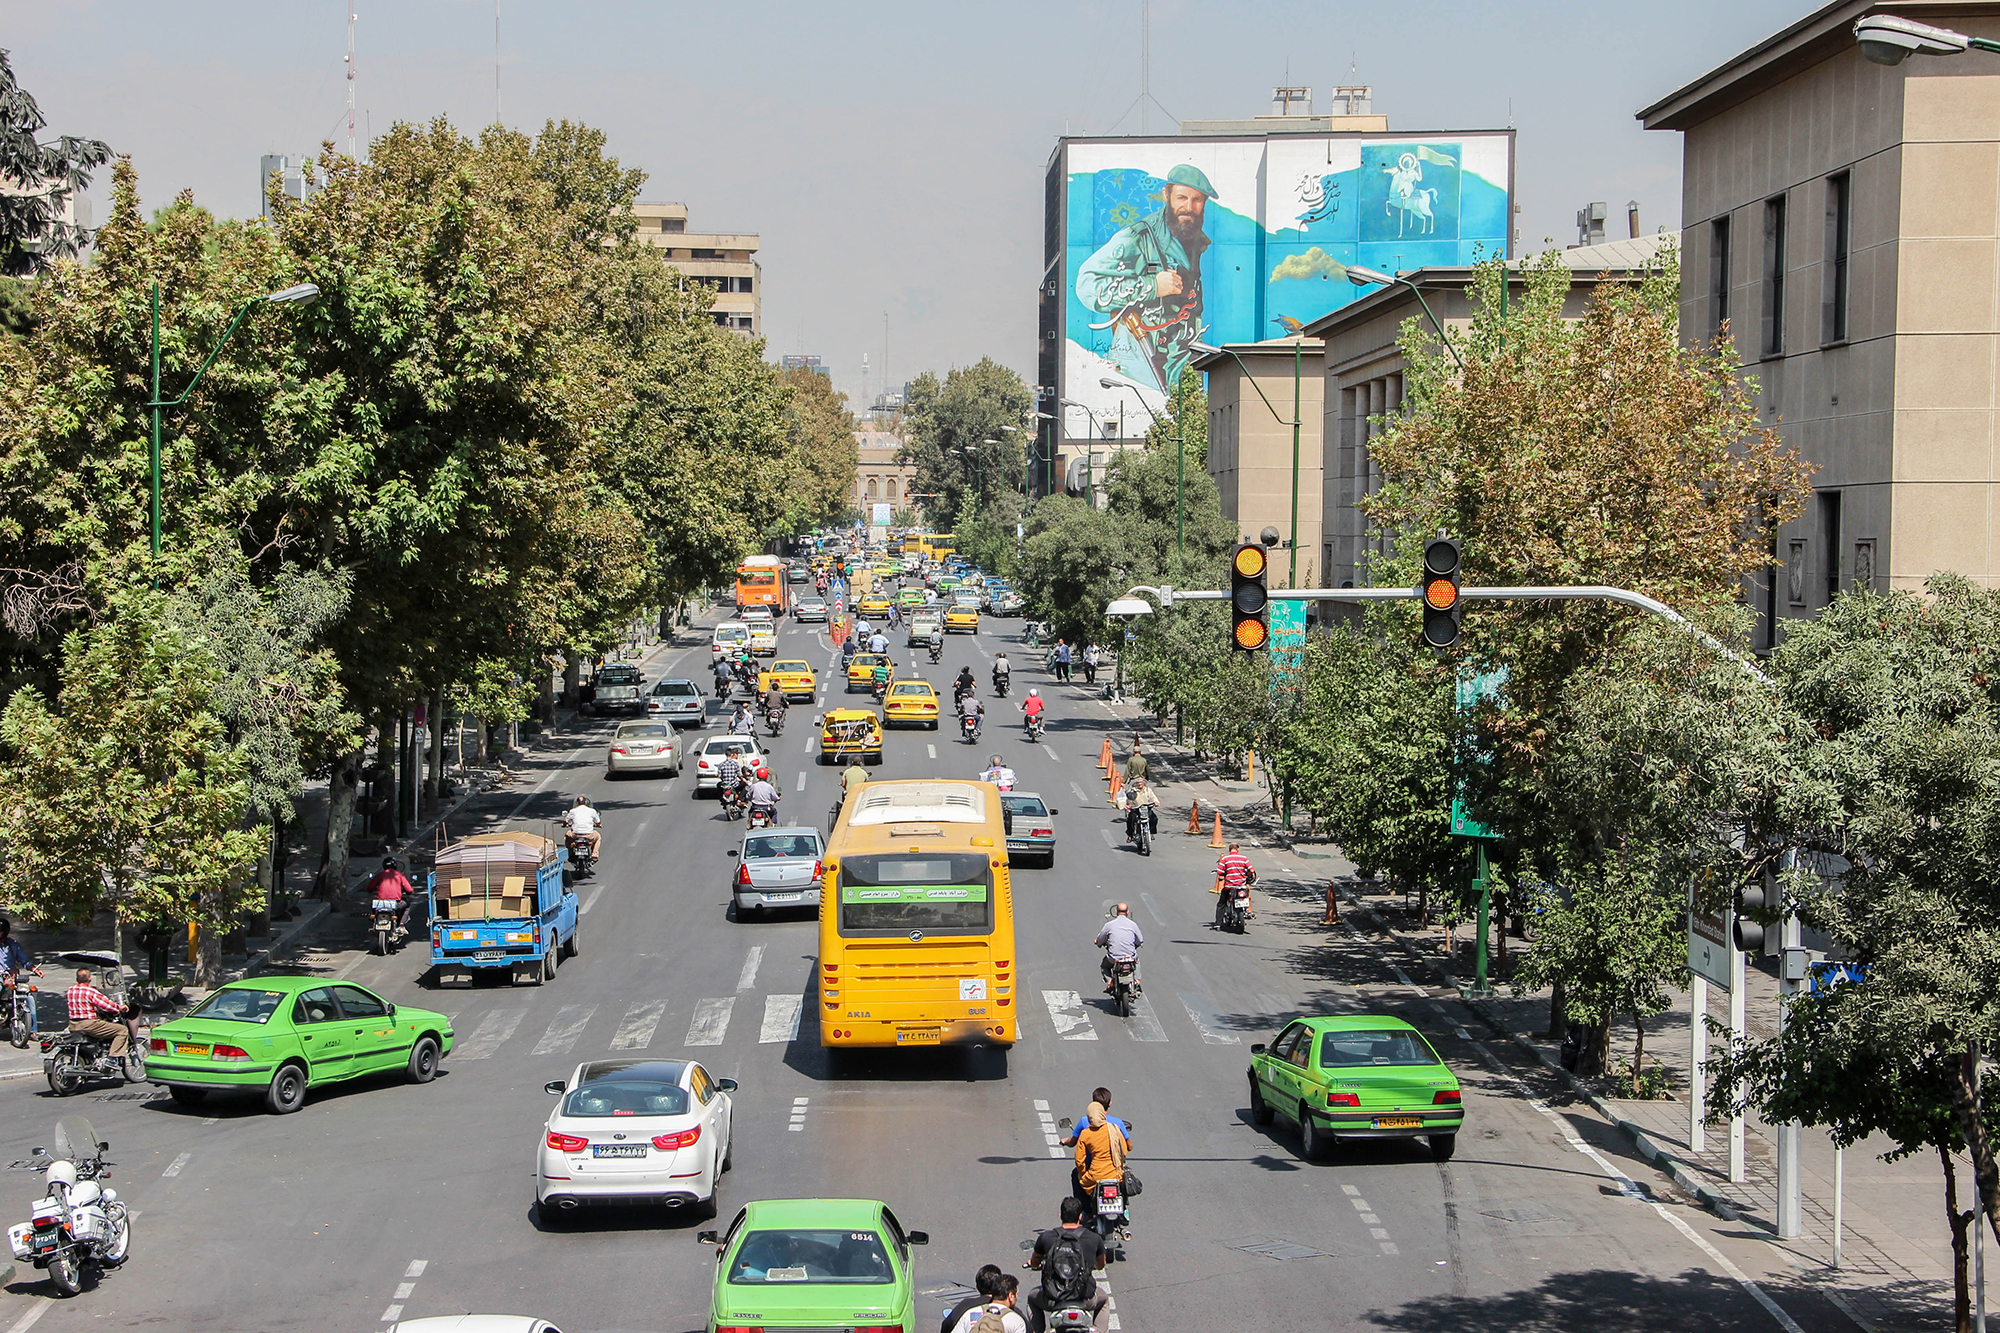 The bustling streets of Tehran. Photo courtesy Becki Enright.